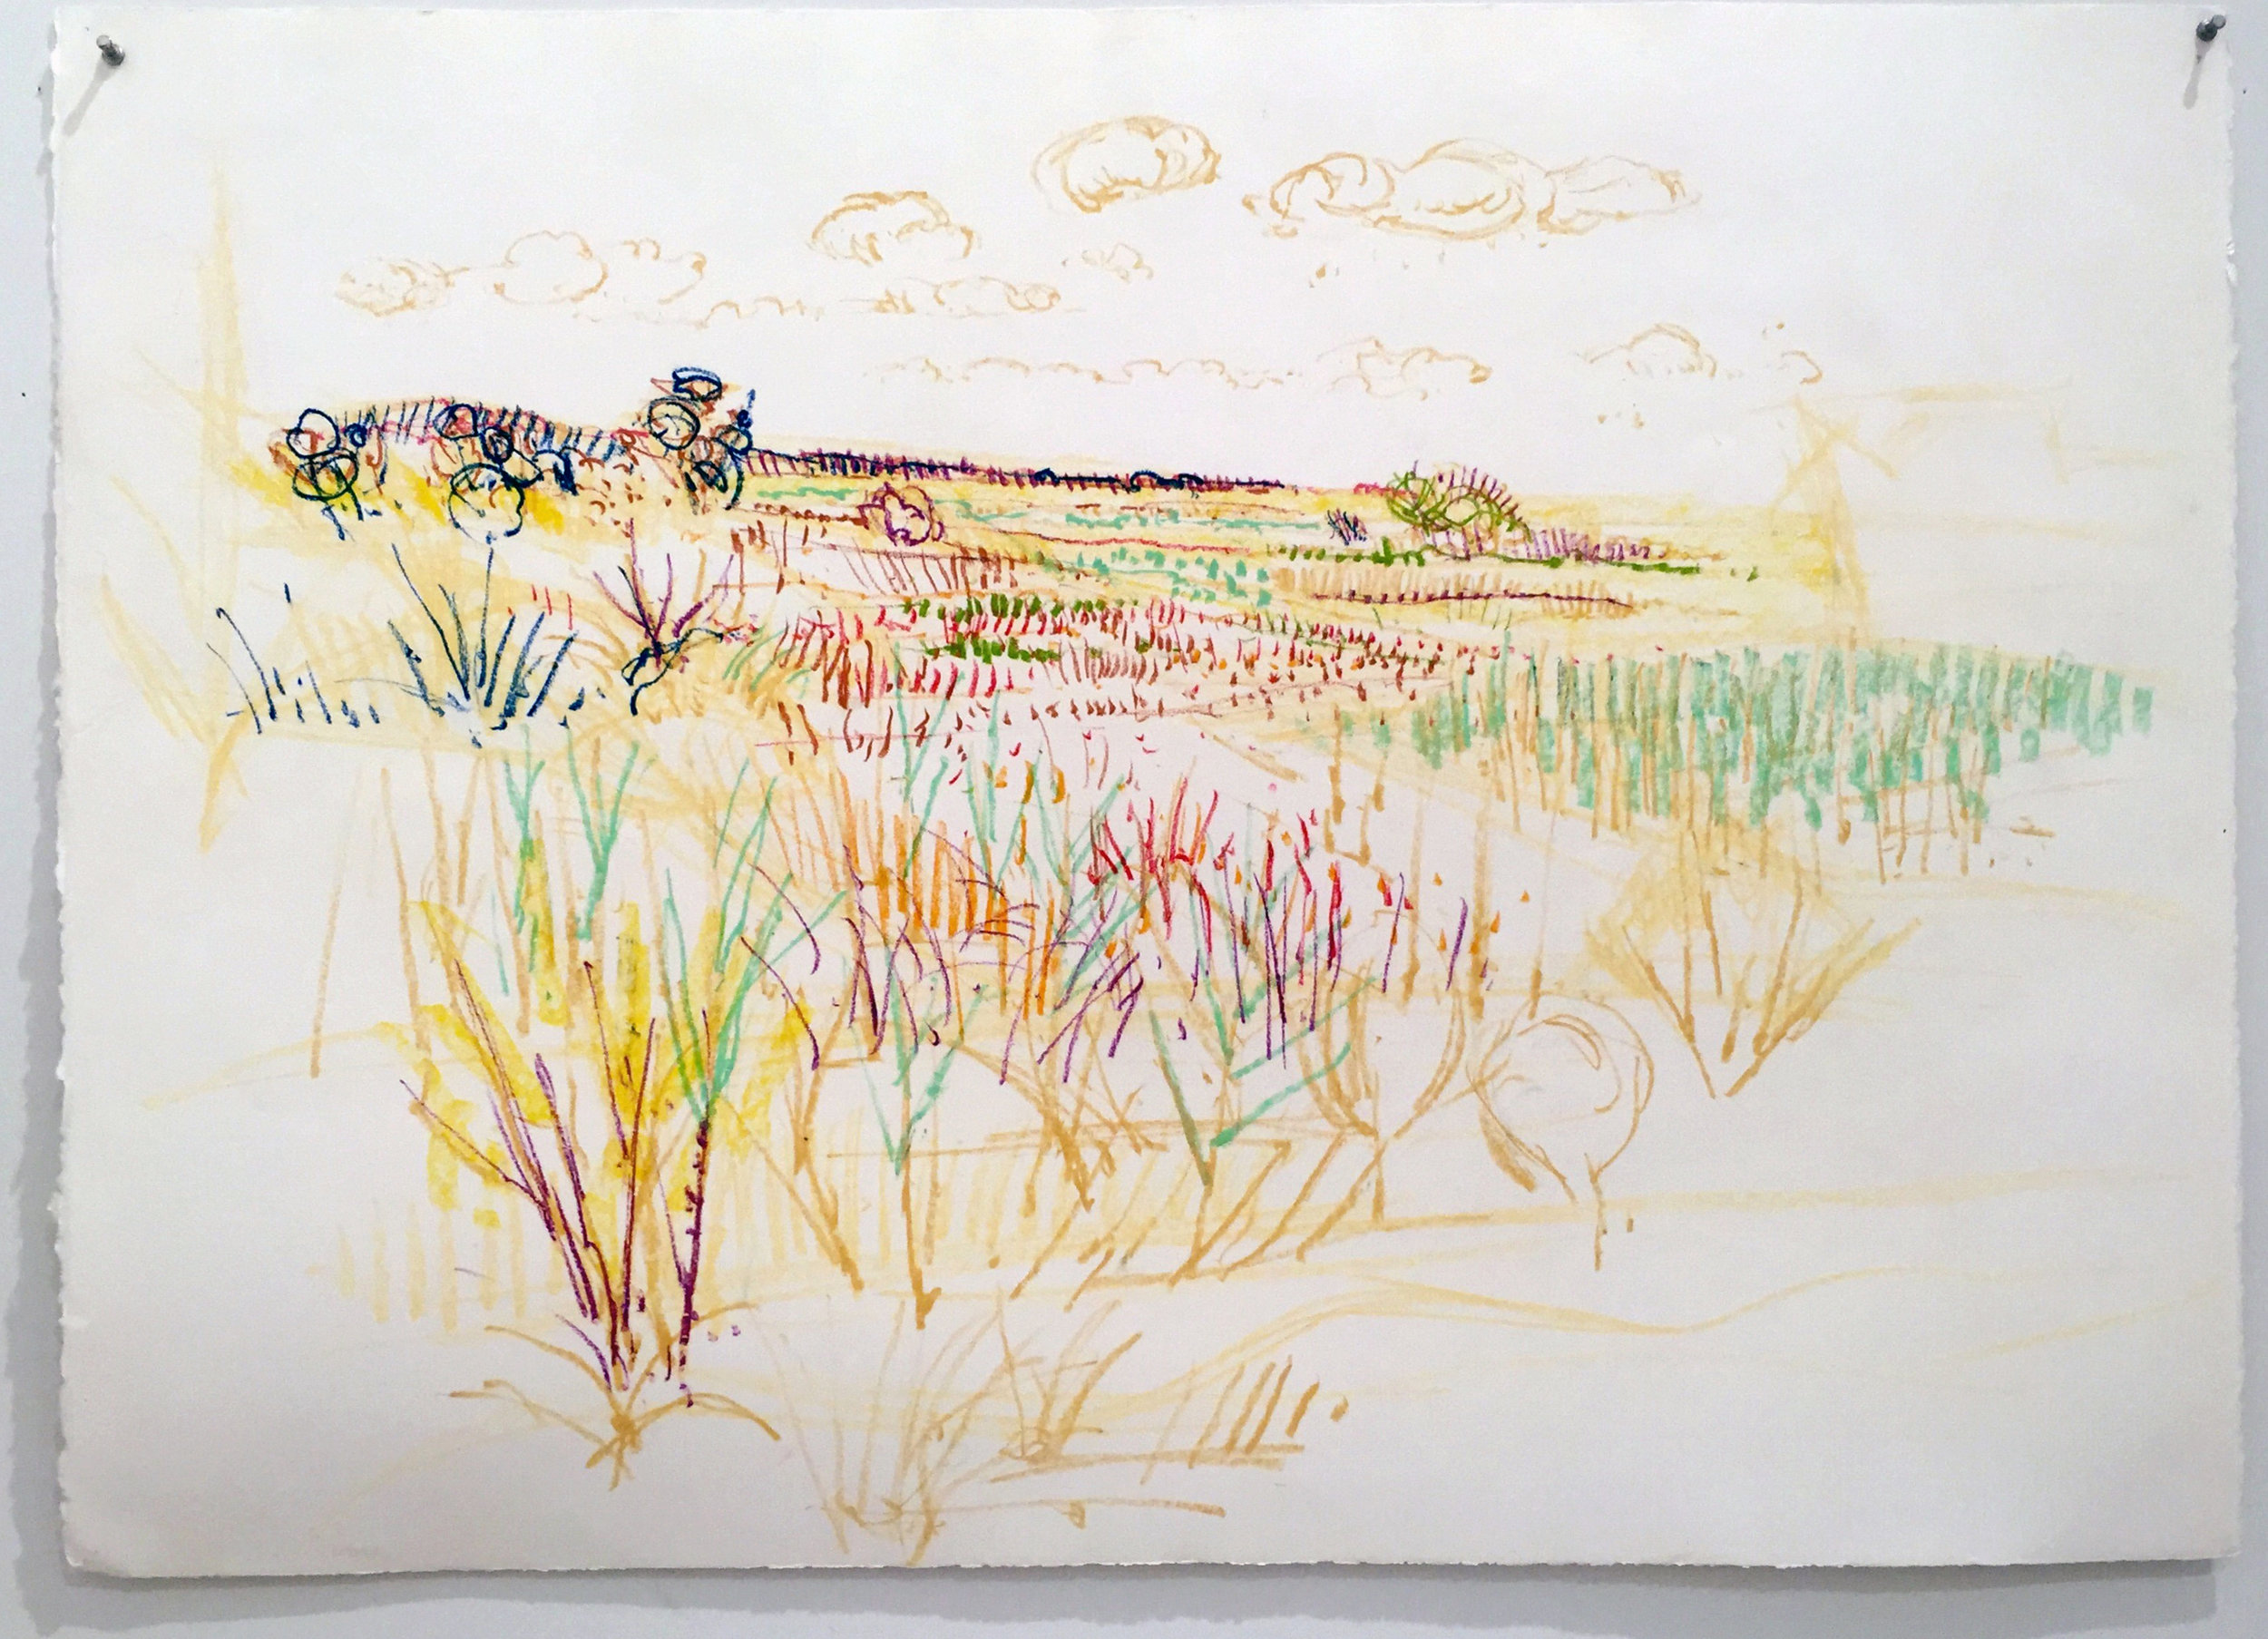 FIELD WITH GRASSES 29.5X41.5